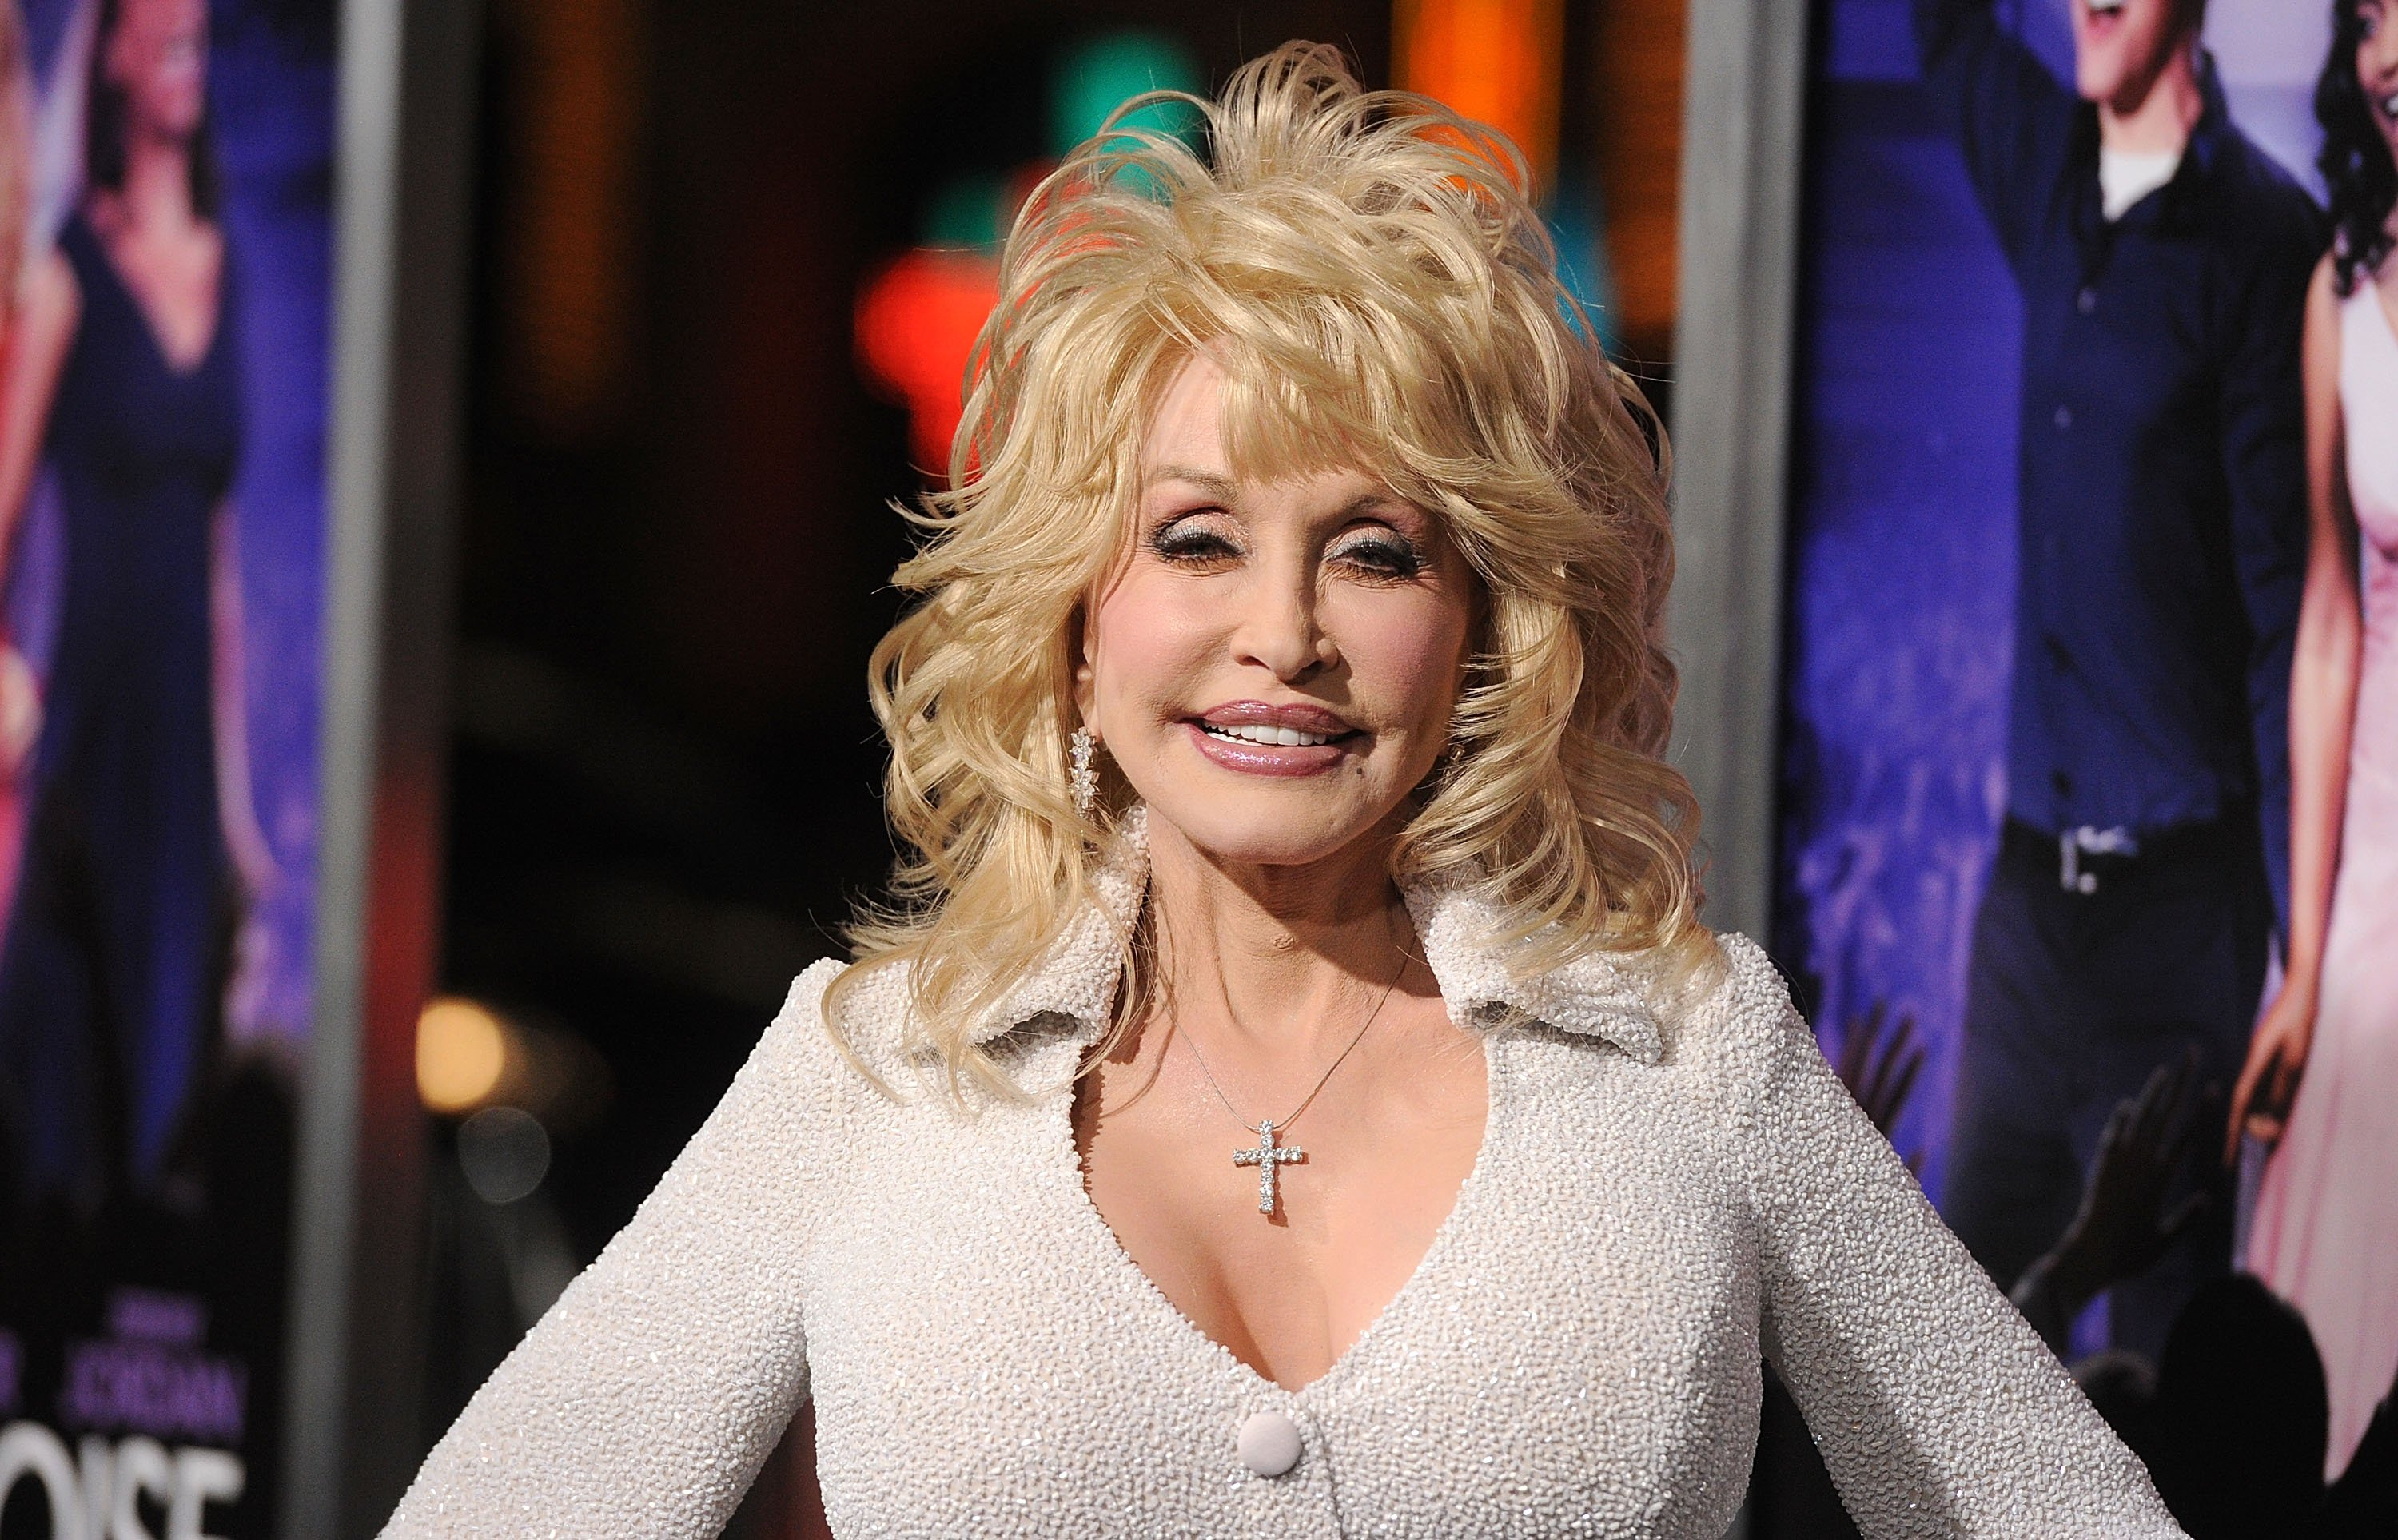 """Dolly Parton at the premiere of """"Joyful Noise"""" held at Grauman's Chinese Theatre on January 9, 2012.   Source: Getty Images"""